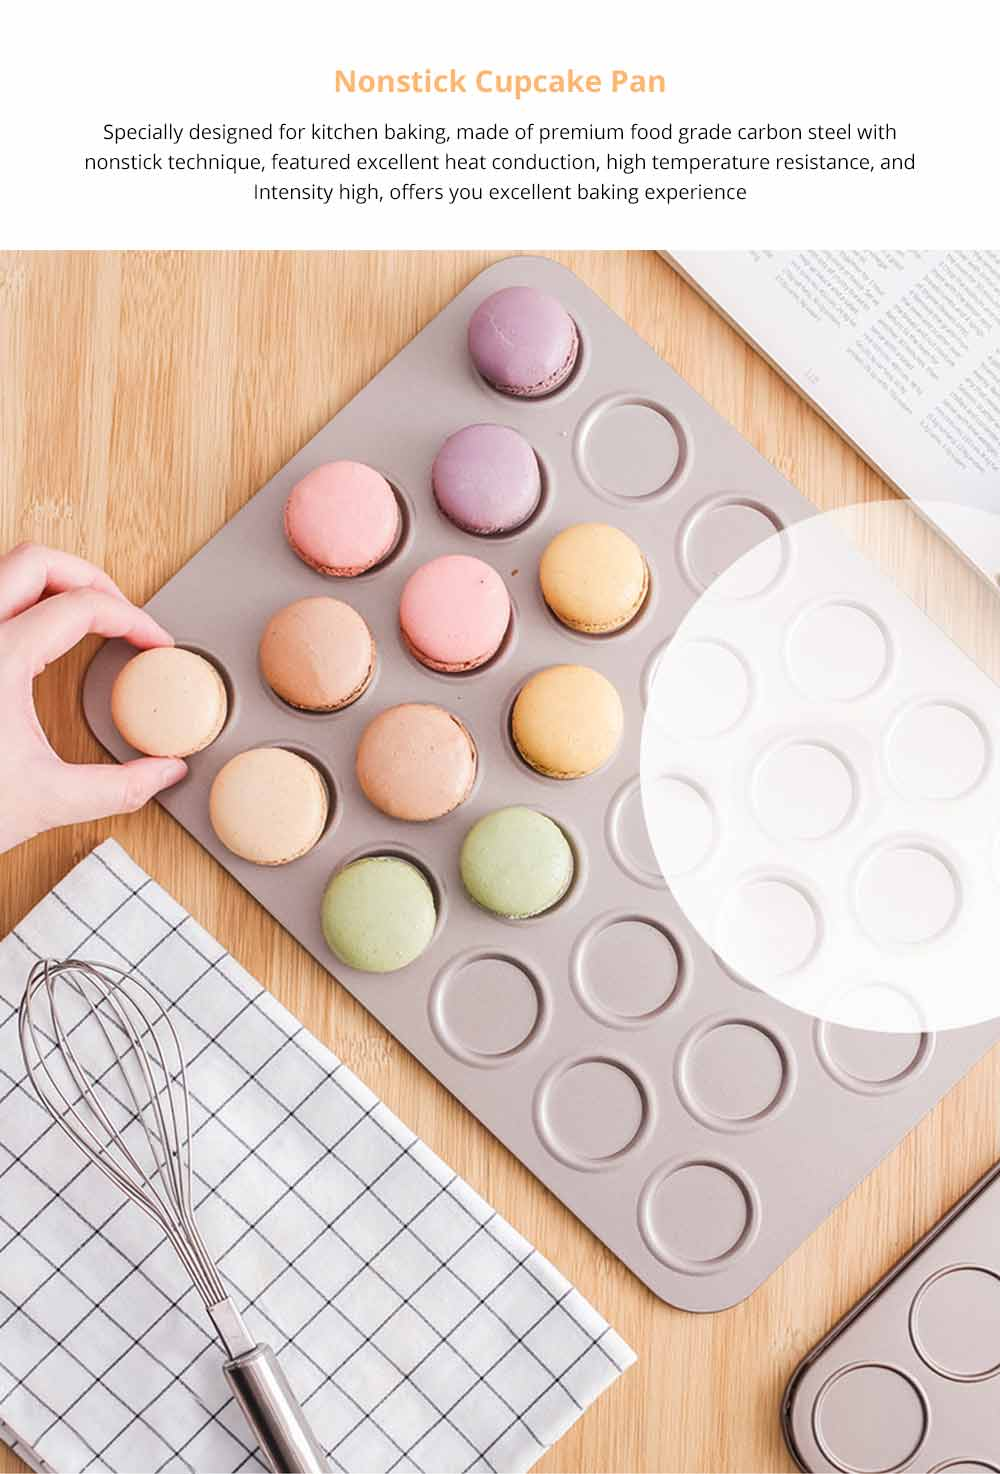 Universal Food Grade Nonstick Bakeware for Cookie Macarons, Carbon Steel Quick Release Coating Cupcake, Puff and Muffin Pan 5